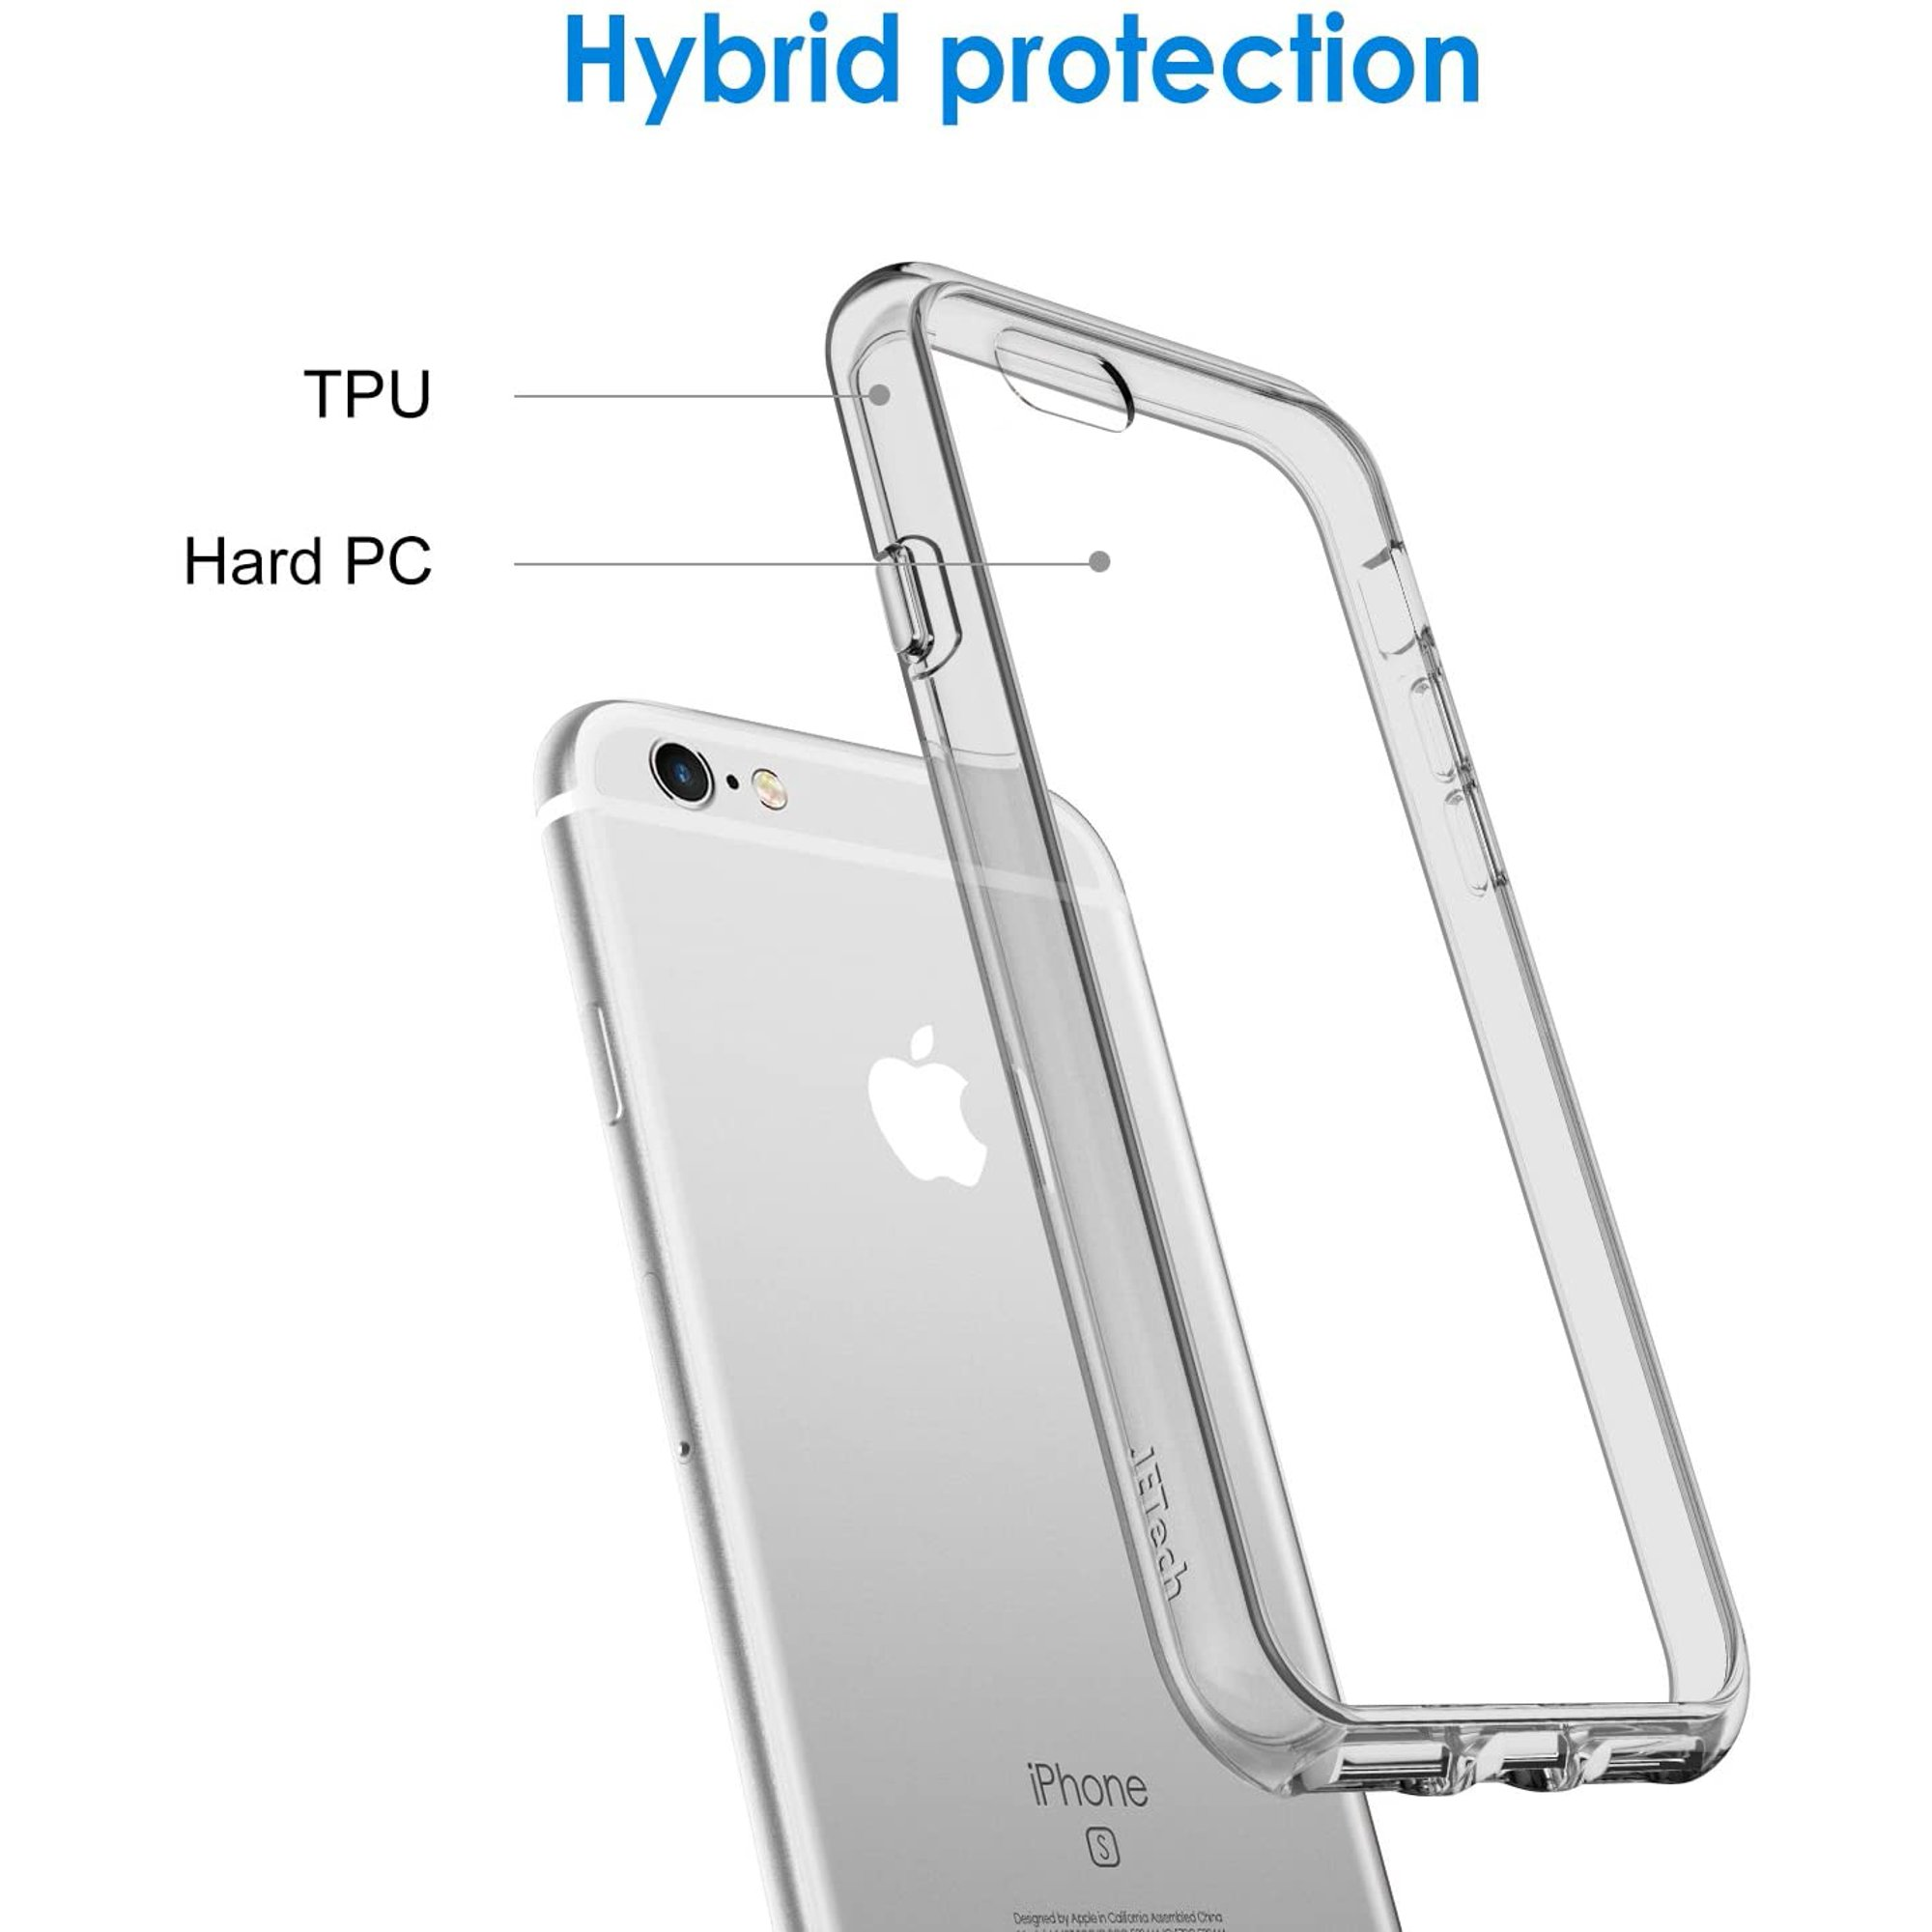 JETech Case for Apple iPhone 6 and iPhone 6s, Shock-Absorption Bumper Cover, Anti-Scratch Clear Back, Grey